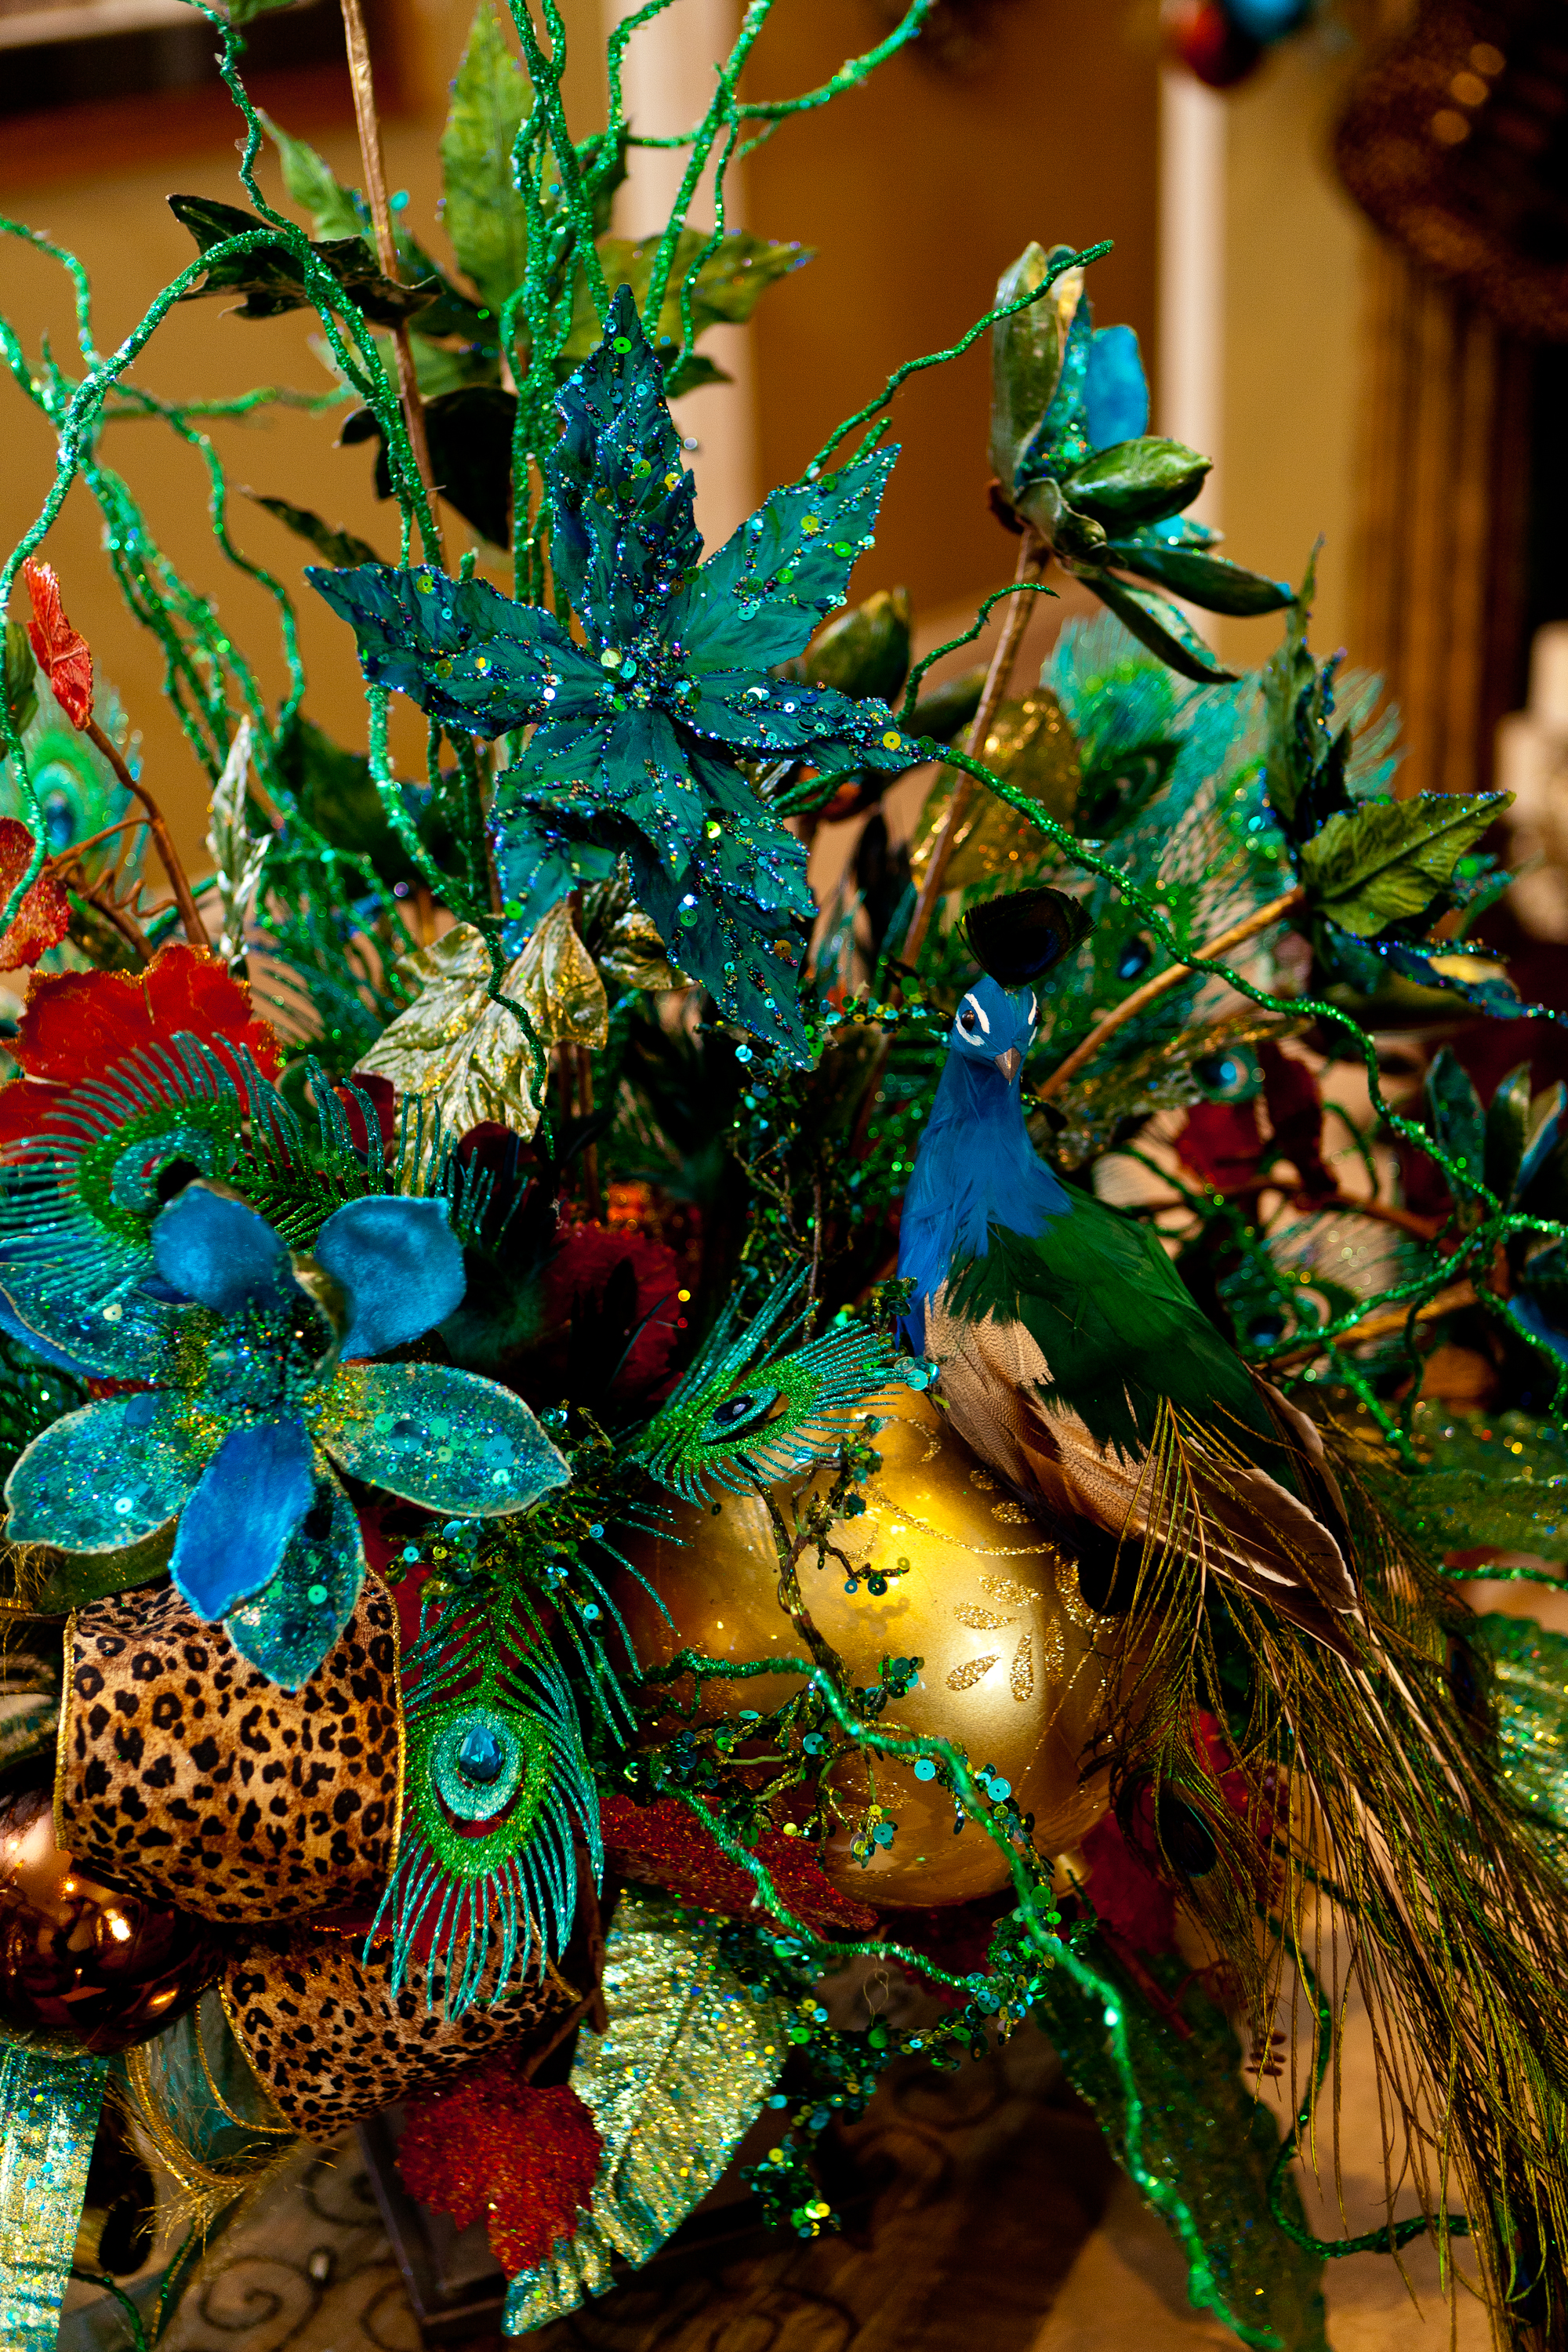 Christmas Trees Decorated With Peacocks : Peacock show me decorating